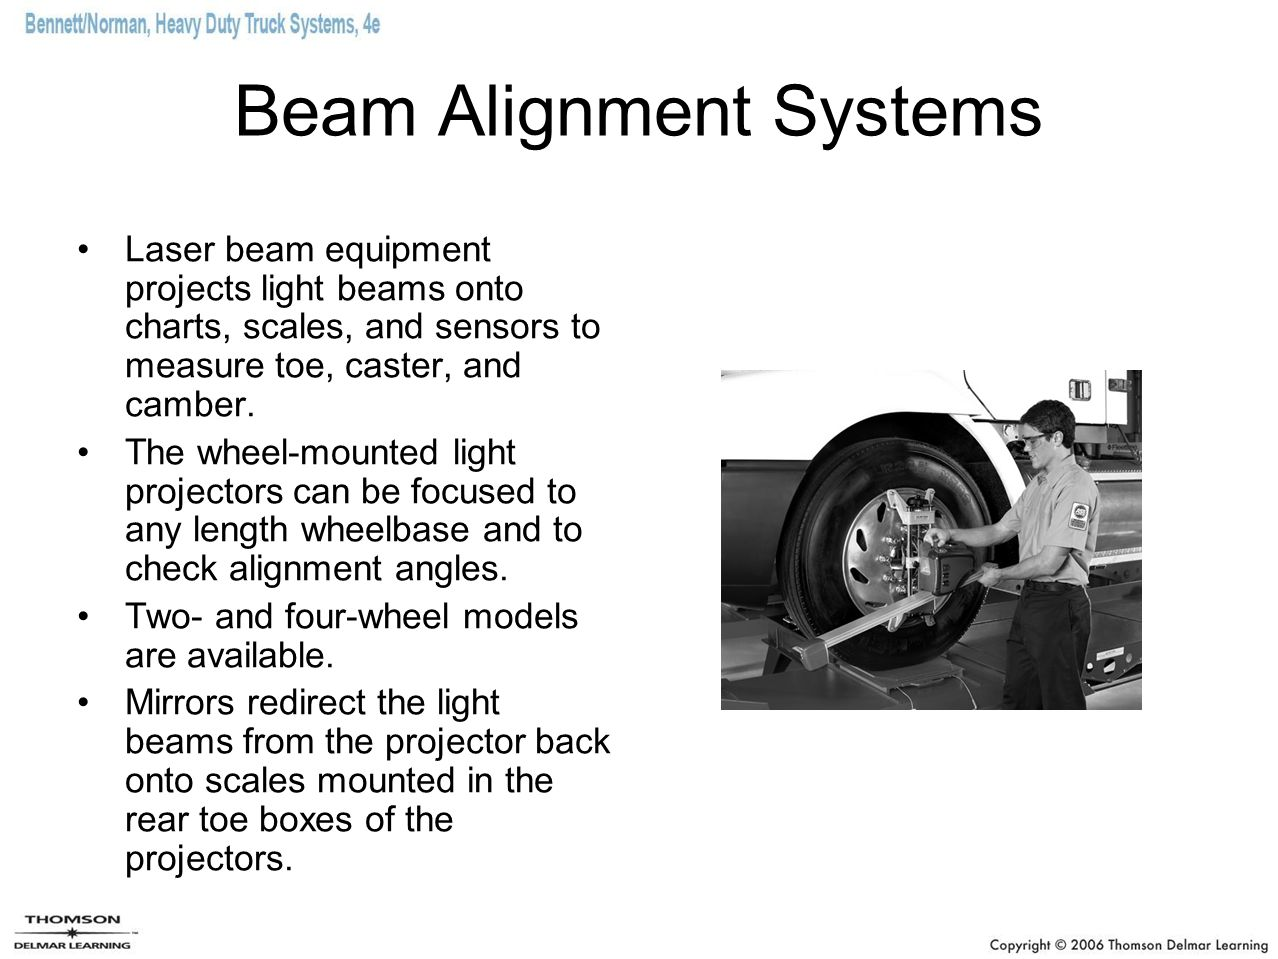 Beam Alignment Systems